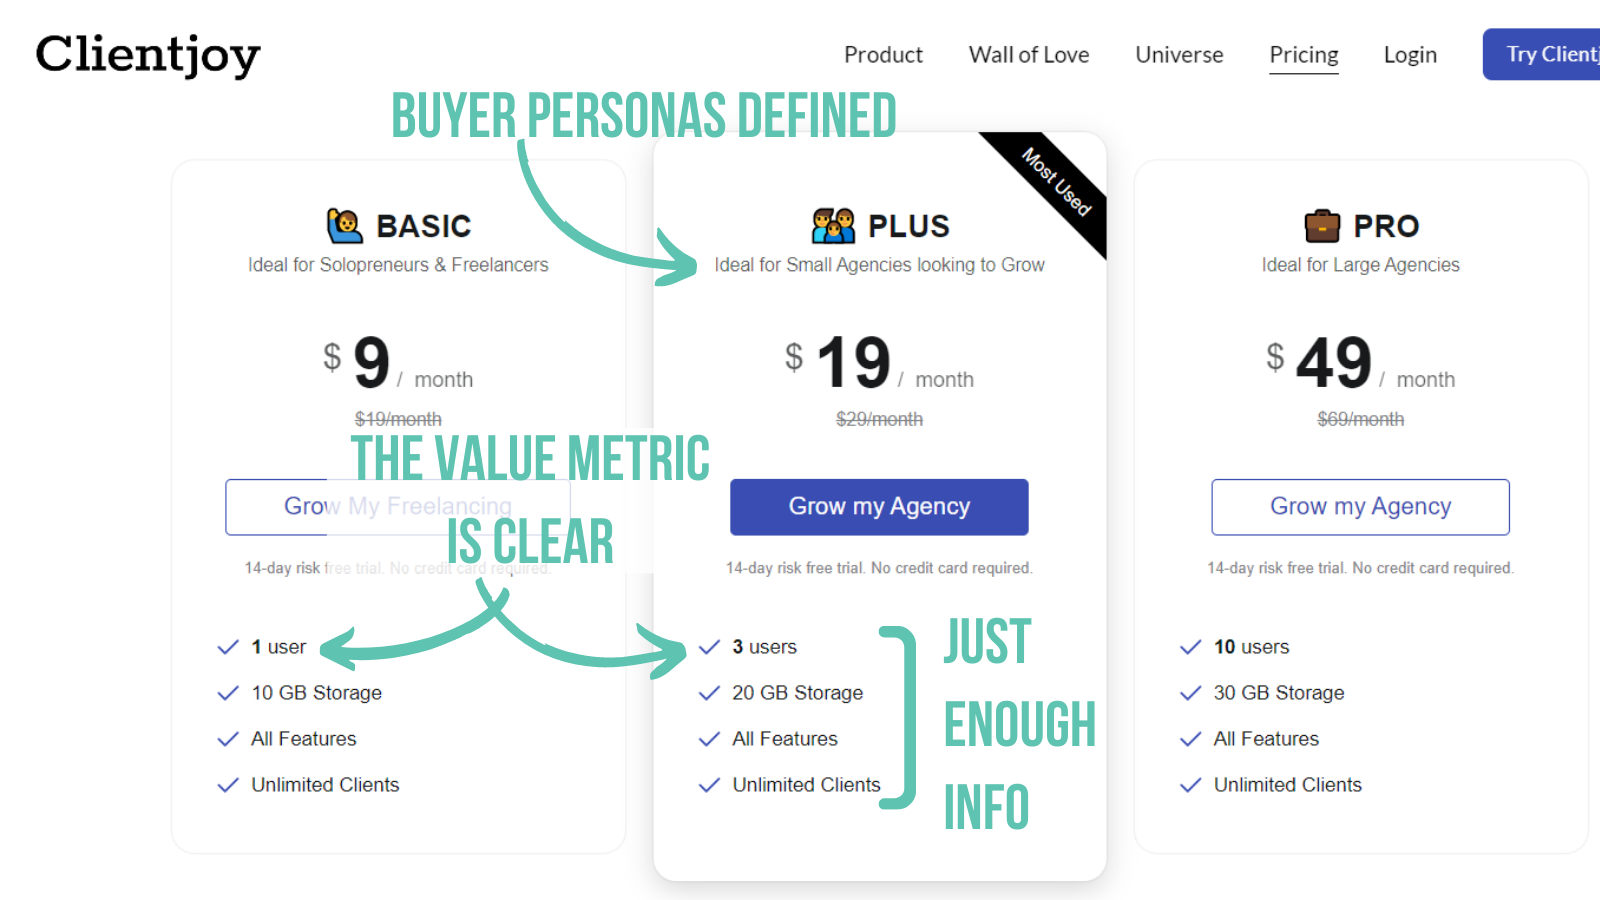 Clientjoy pricing page explained